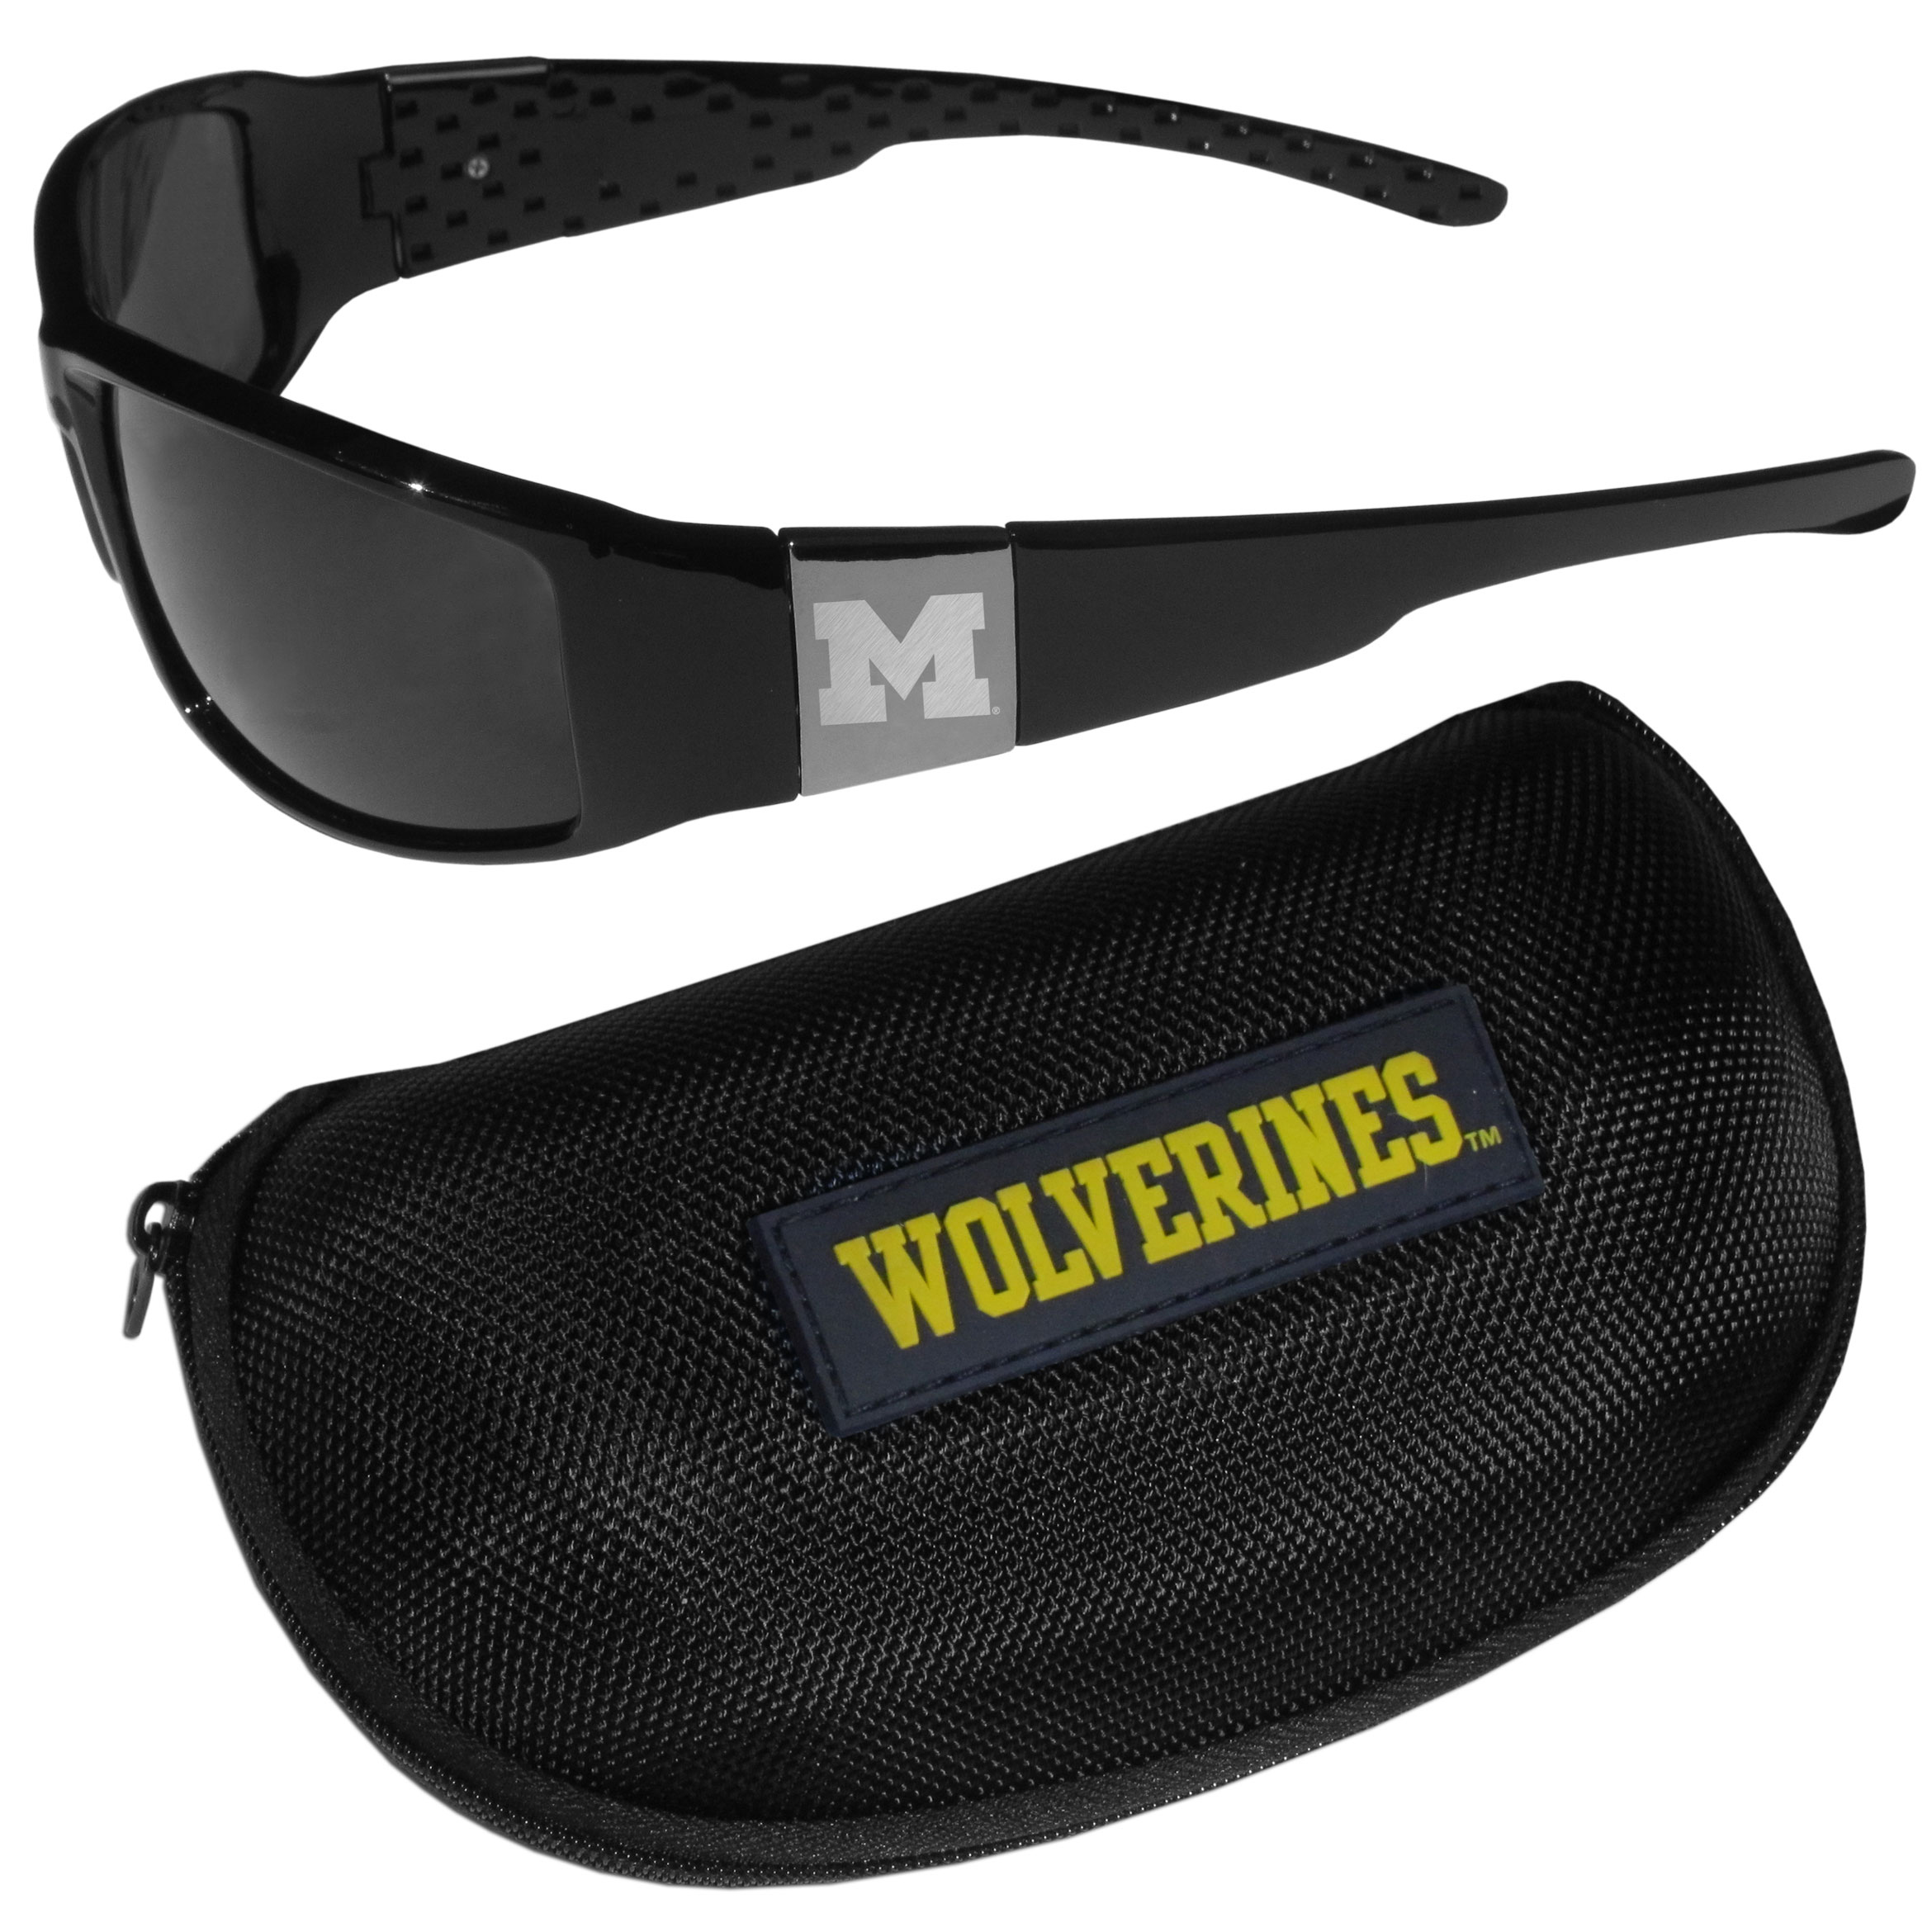 Michigan Wolverines Chrome Wrap Sunglasses and Zippered Carrying Case - These designer inspired frames have a sleek look in all black with high-polish chrome Michigan Wolverines shields on each arm with an etched logo. The shades are perfect any outdoor activity like; golfing, driving, hiking, fishing or cheering on the team at a tailgating event or an at home game day BBQ with a lens rating of 100% UVA/UVB for maximum UV protection. The high-quality frames are as durable as they are fashionable and with their classic look they are perfect fan accessory that can be worn everyday for every occasion. The shades come with a zippered hard shell case to keep your sunglasses safe.